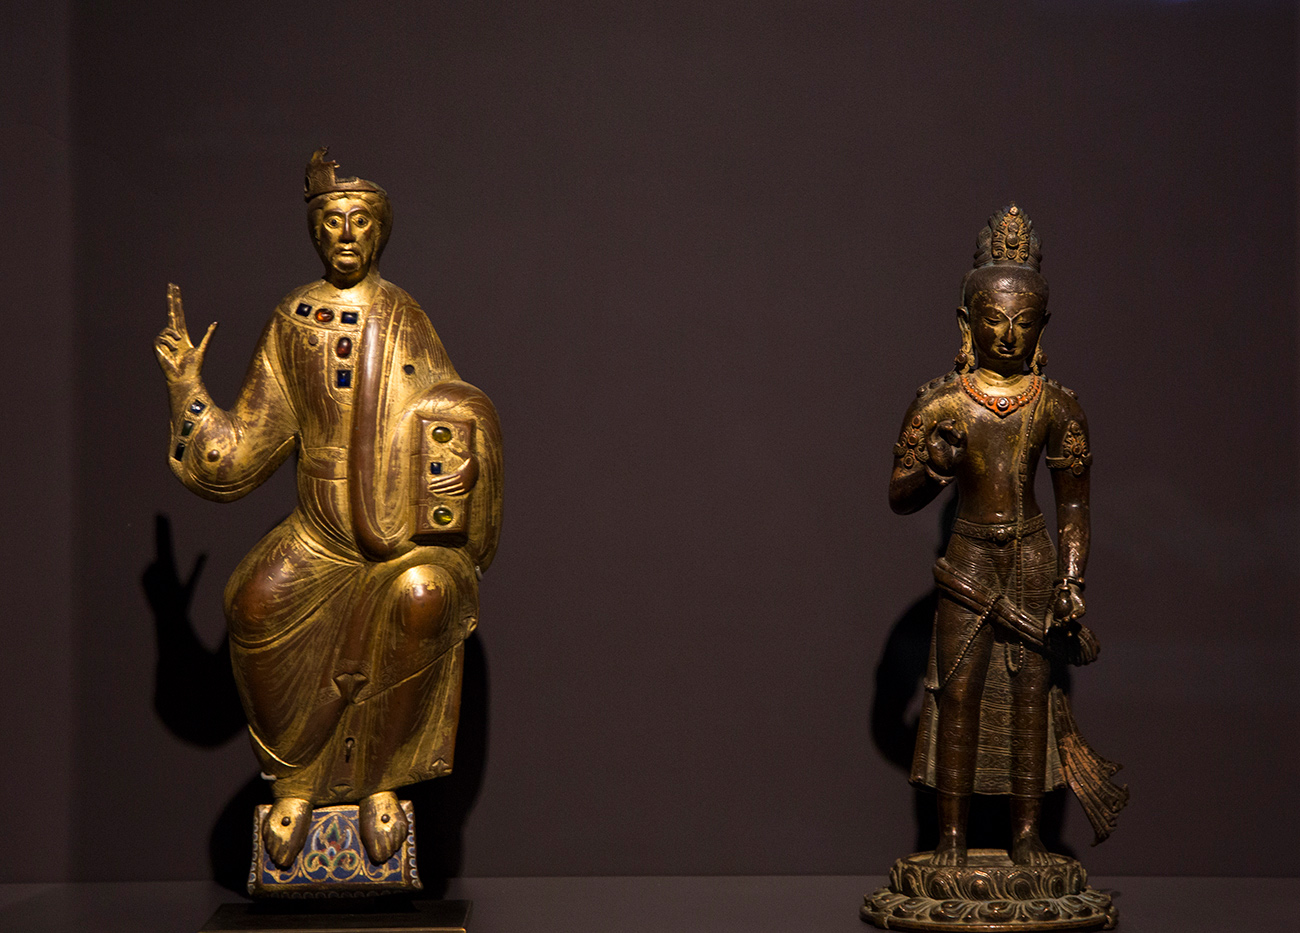 Two small metal devotional sculptures side by side in case, both with their right arms raised in blessing